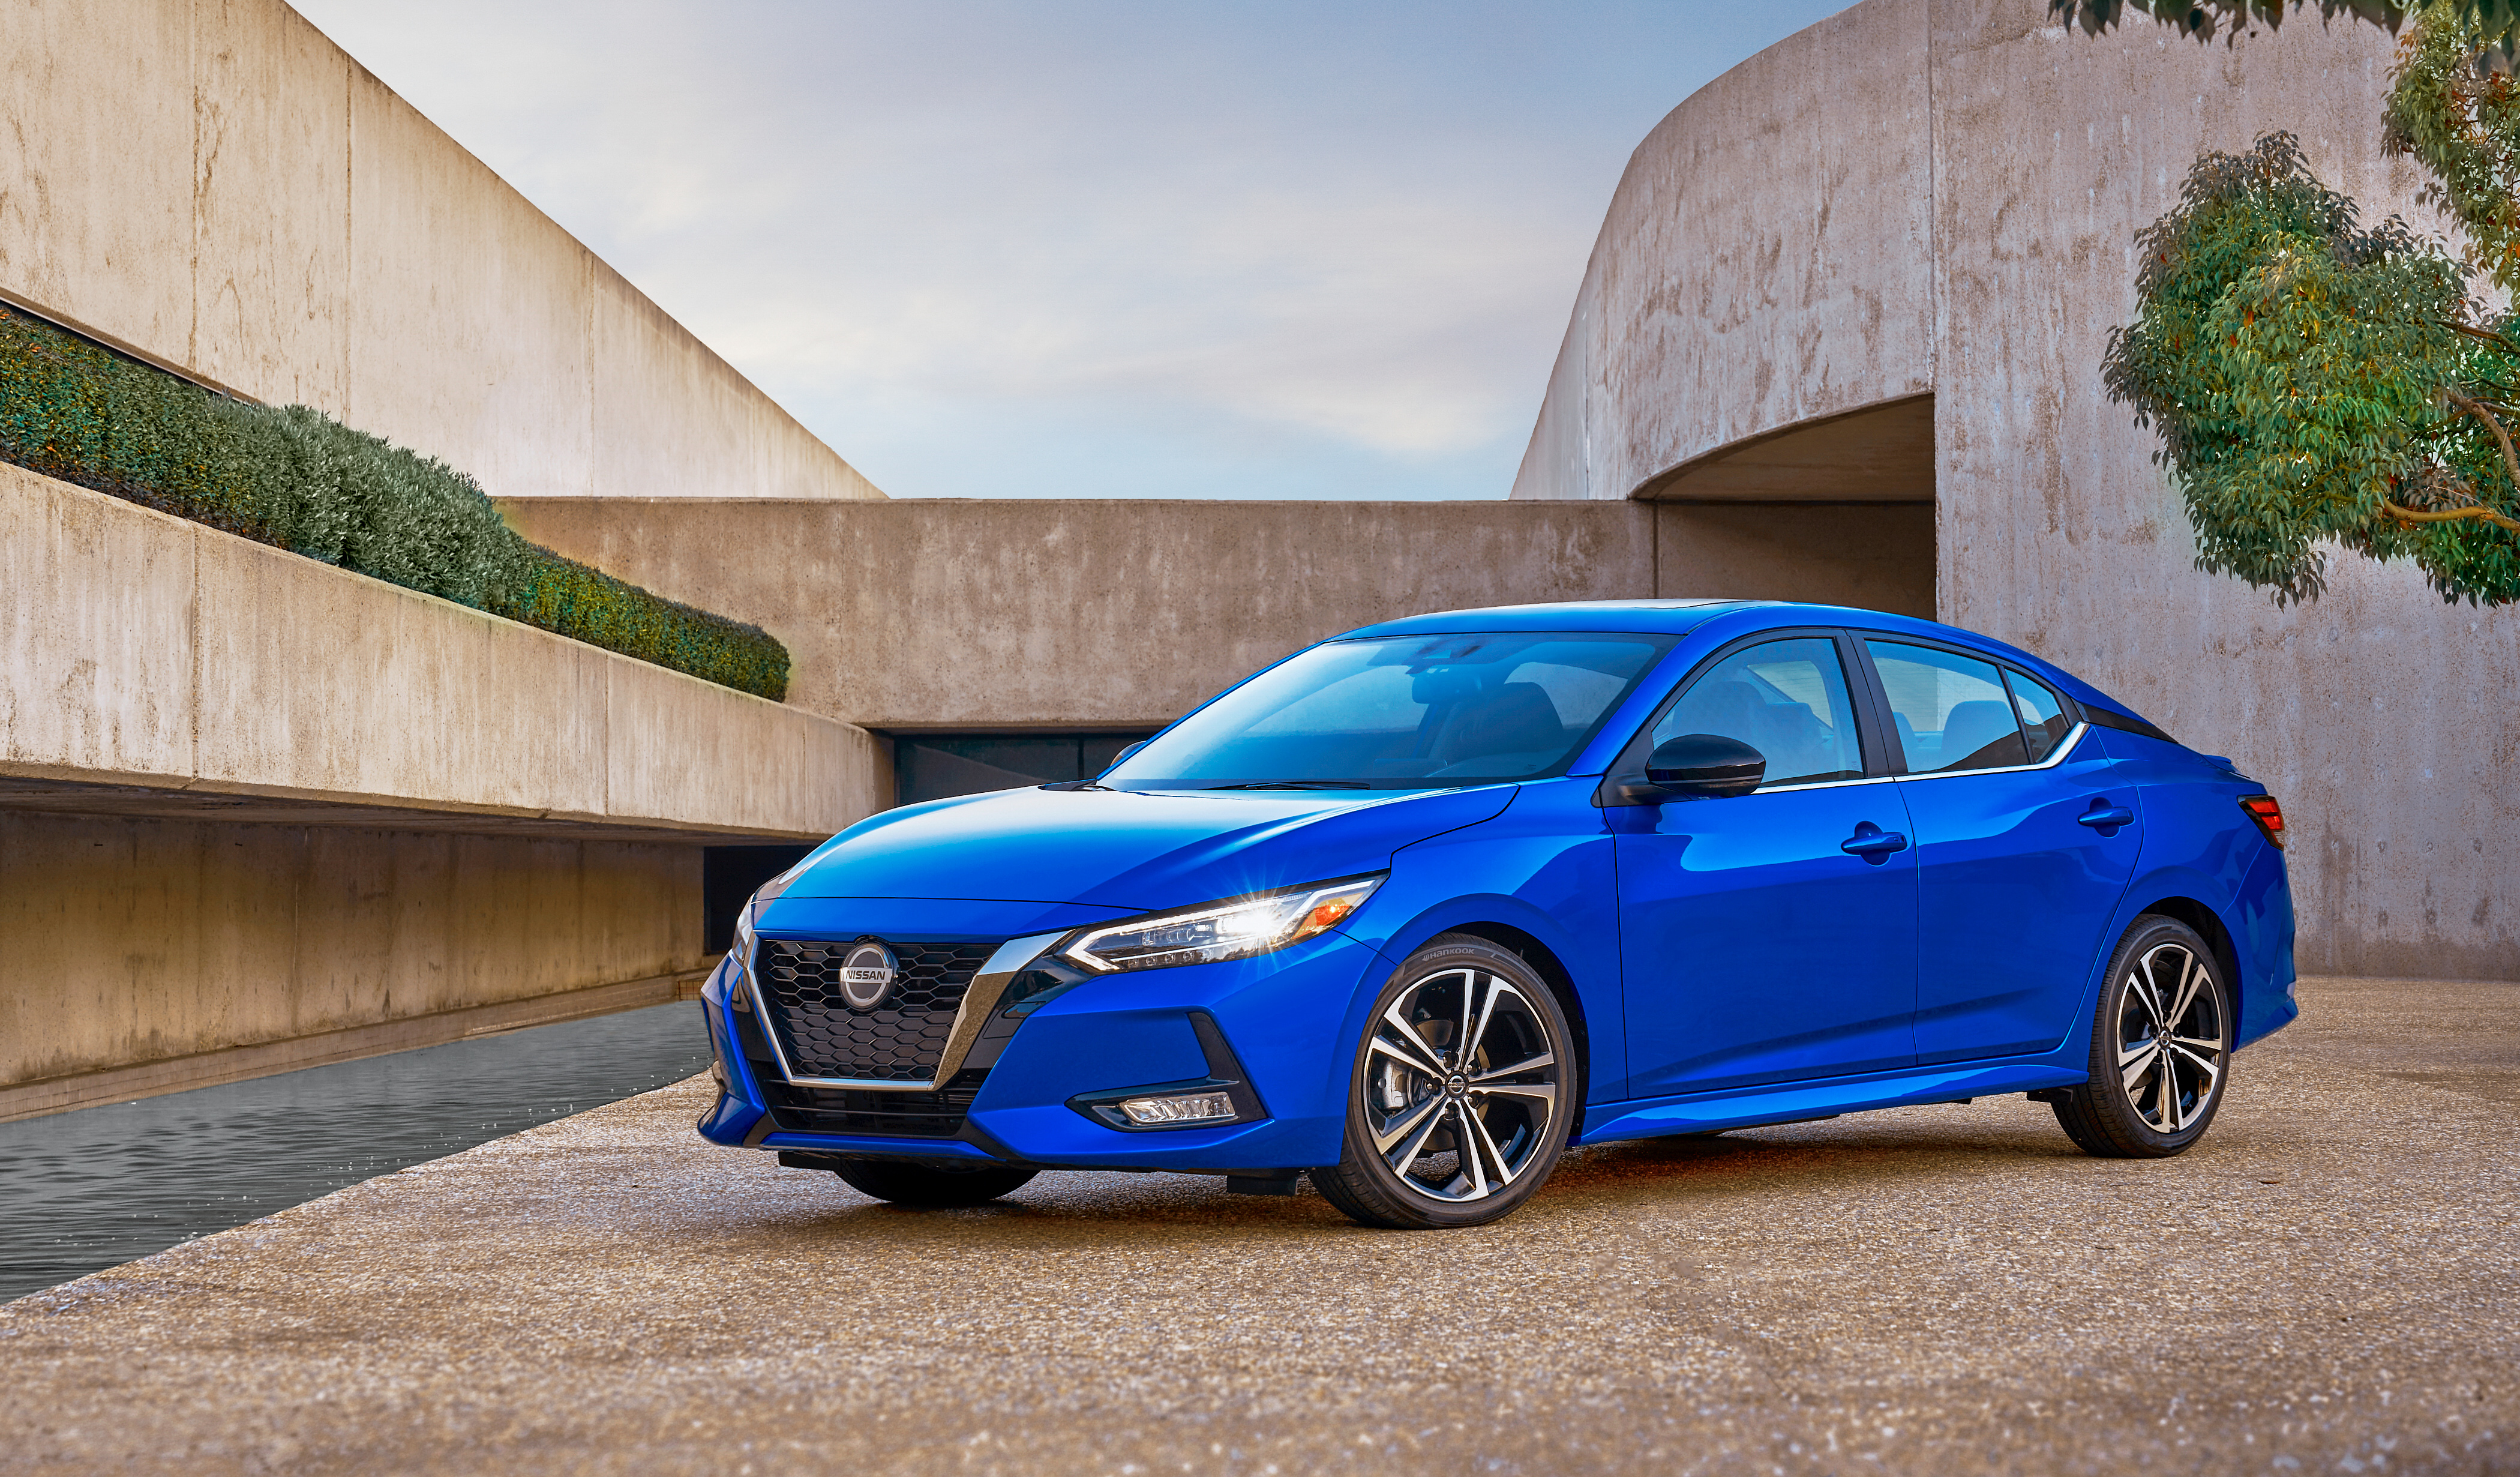 Nissan Sentra Latest News Reviews Specifications Prices Photos And Videos Top Speed The nissan sentra is a car produced by nissan since 1982. nissan sentra latest news reviews specifications prices photos and videos top speed